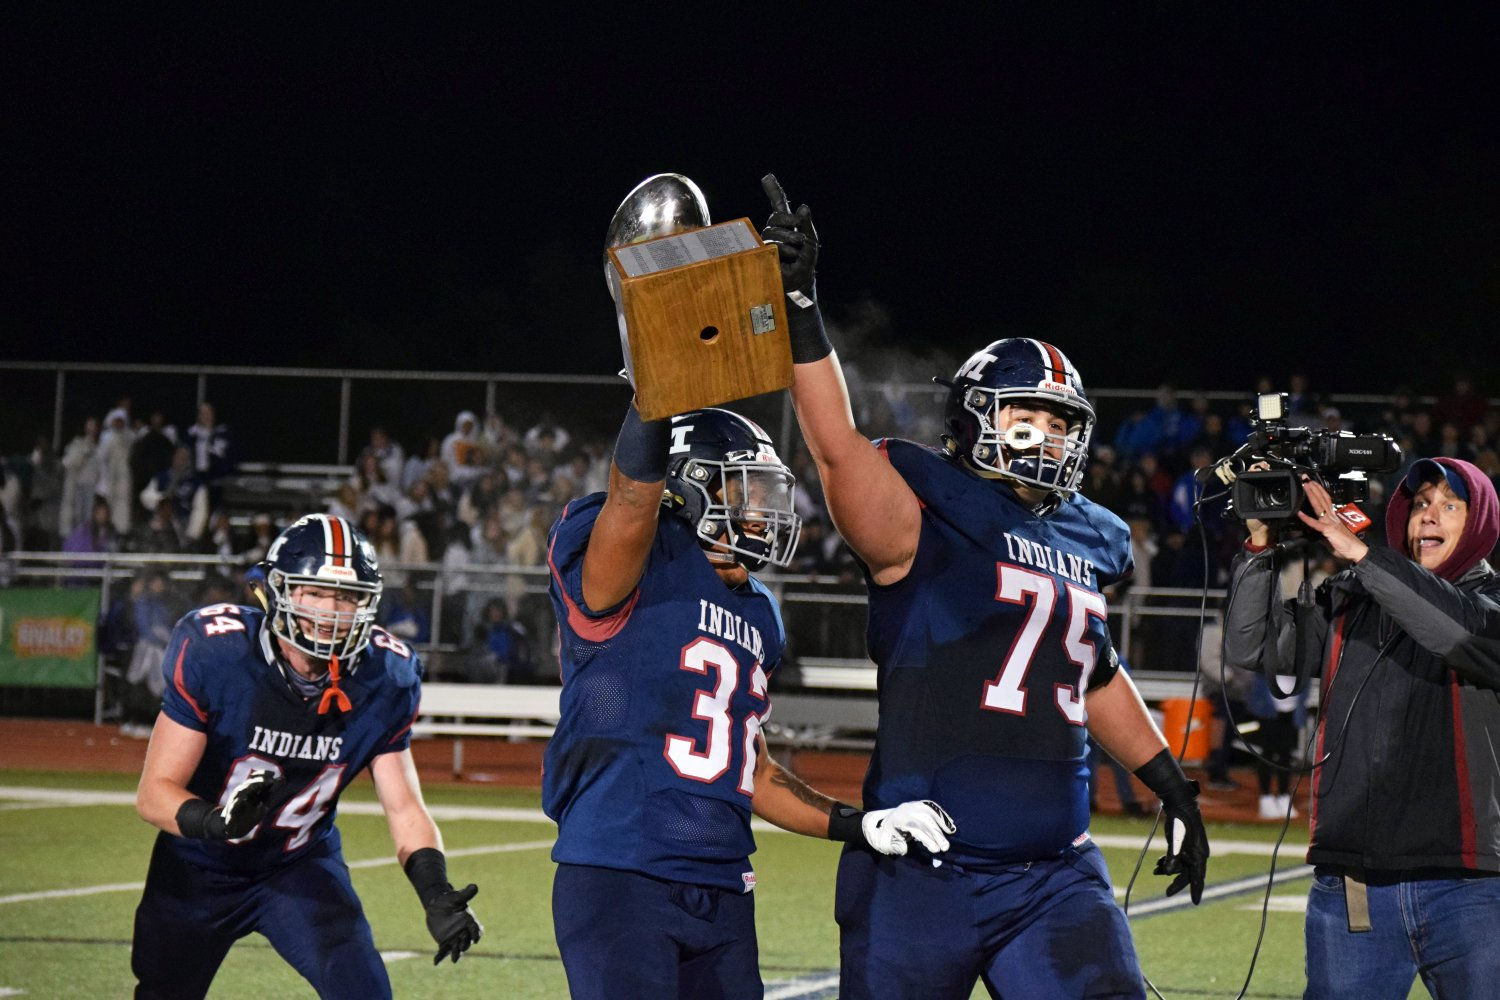 Senior BJ Young holds up the silver trophy and teammate senior Sam Shields raises his arm in victory. Manhattan High School and Junction City competed for the trophy, rivalry award and bragging rights on Oct. 11 at Bishop Stadium. The game was neck-and-neck going into the fourth quarter but MHS pulled ahead 29-28 after making the extra point in the final moments of the game. Photo by Hailey Eilert